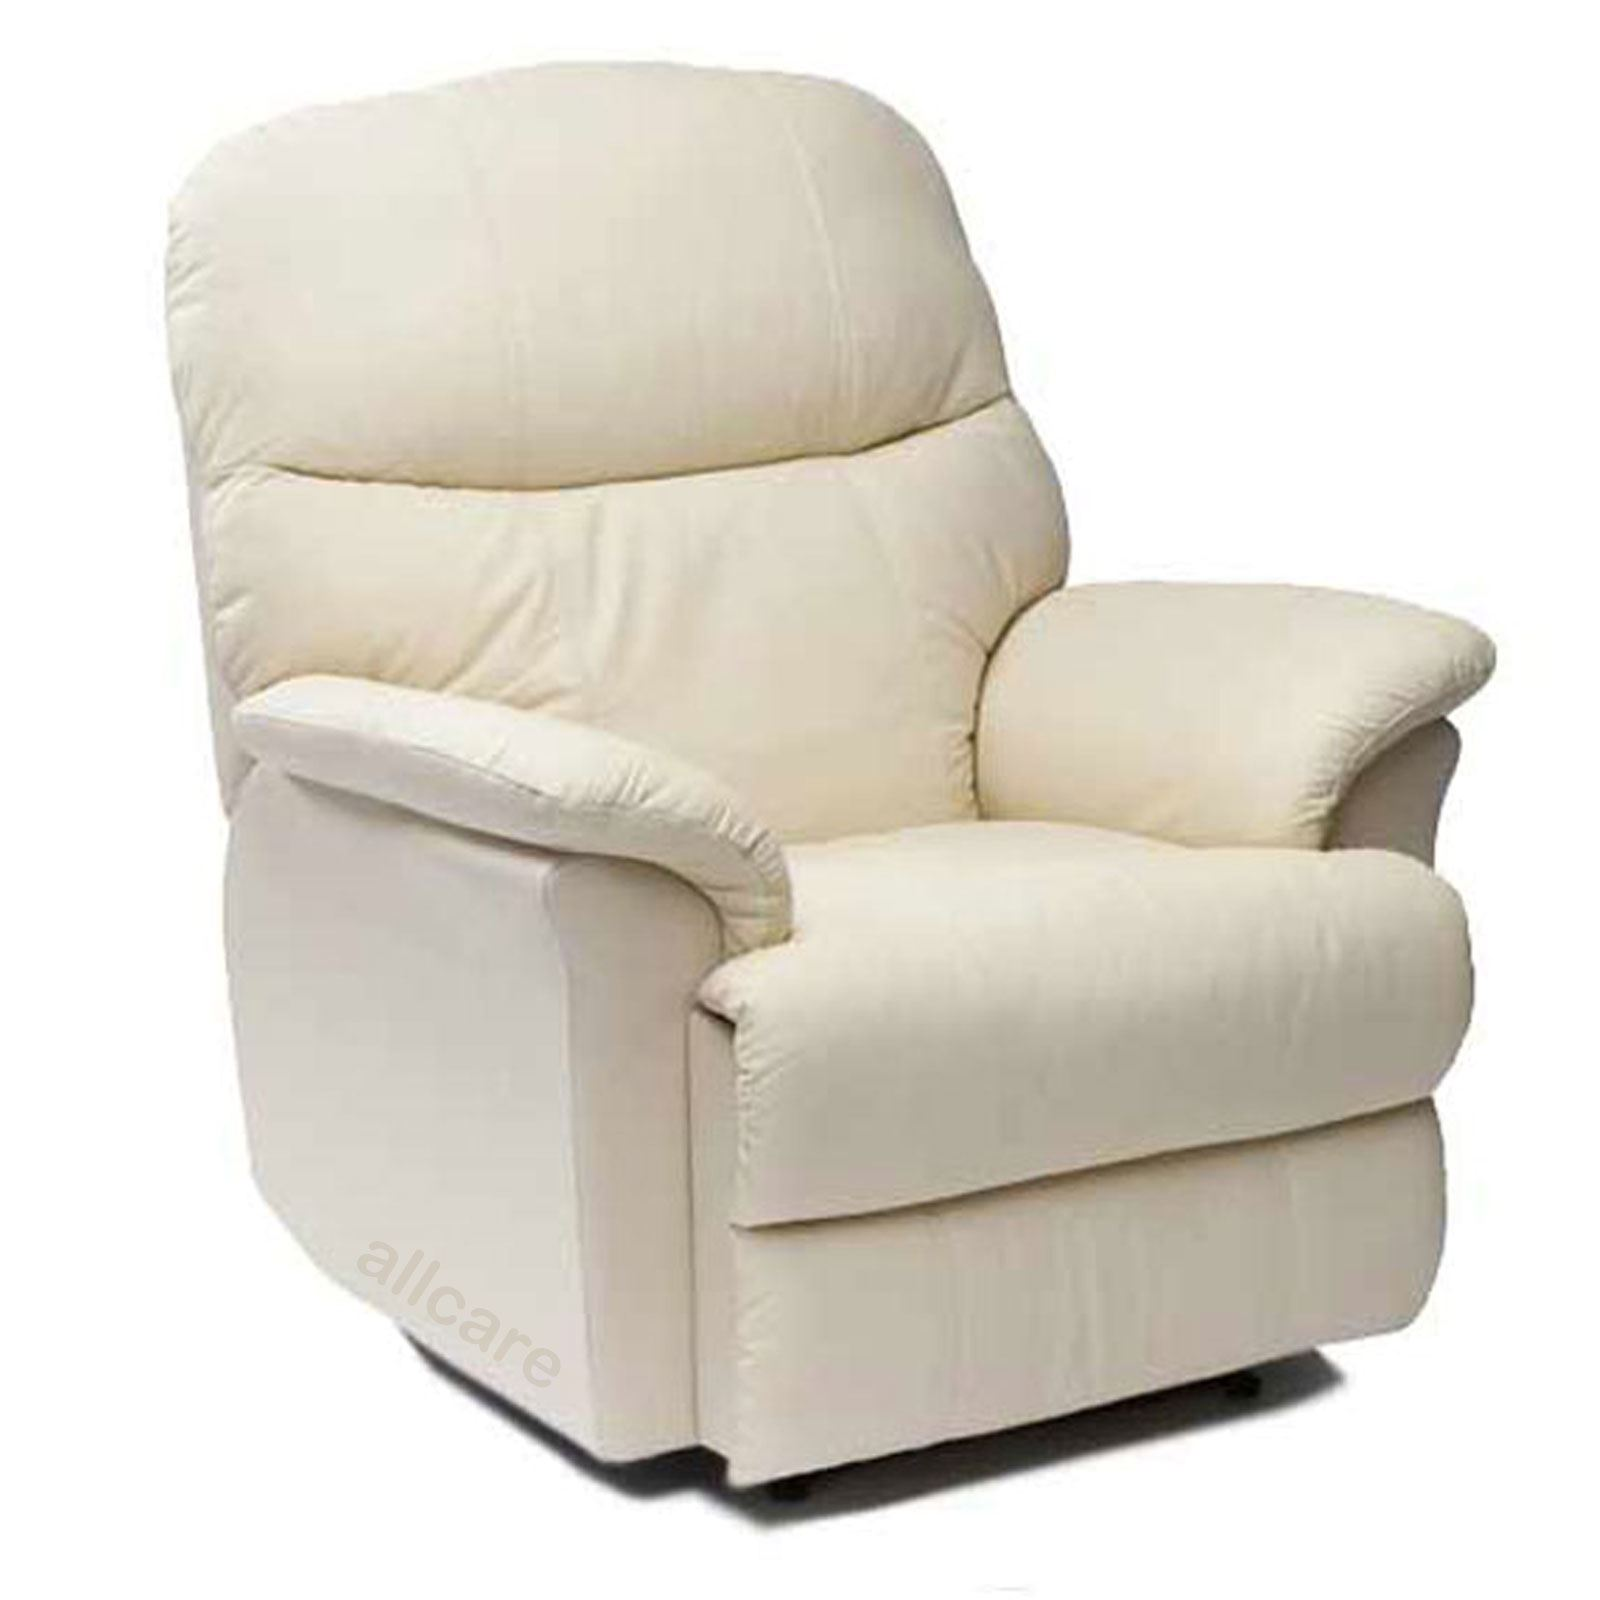 Restwell-Lars-Leather-Electric-Riser-Recliner-Chair-Dual-  sc 1 st  eBay : restwell recliners - islam-shia.org